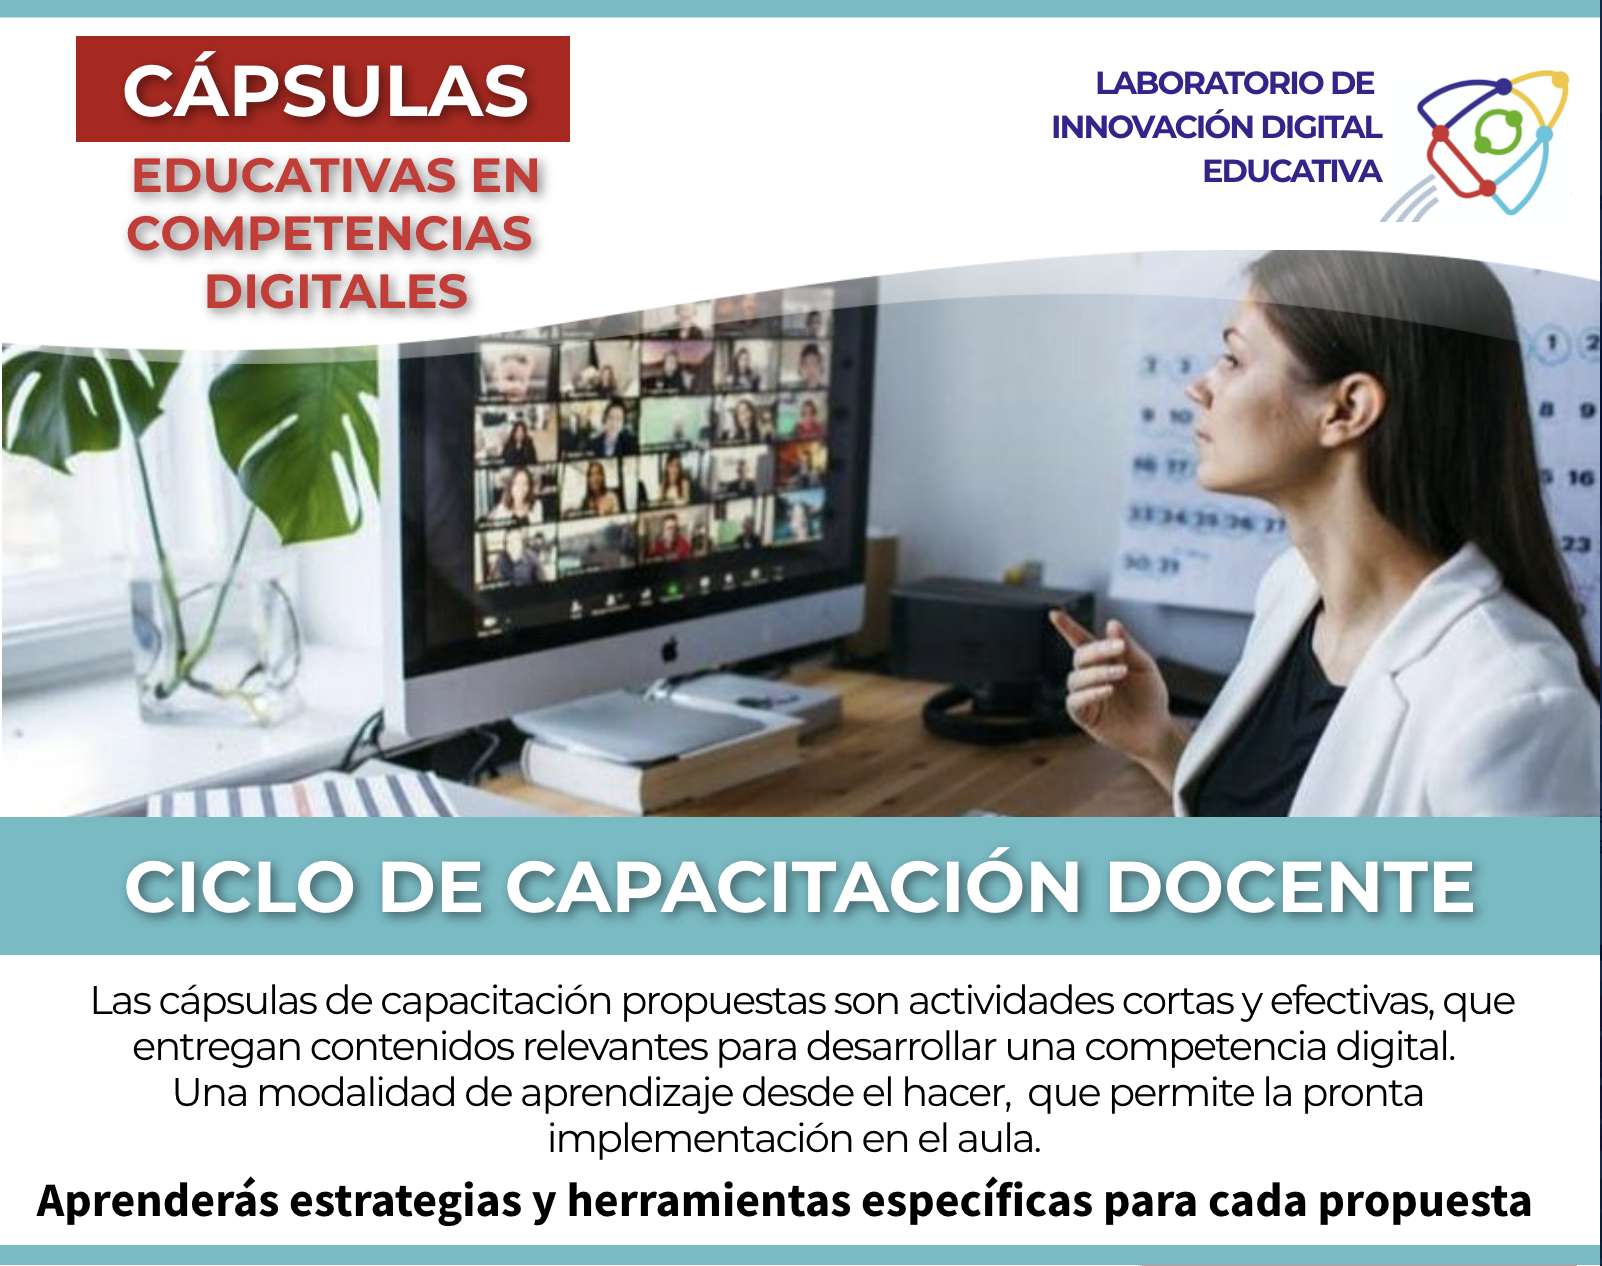 Cápsulas Educativas en Competencias Digitales